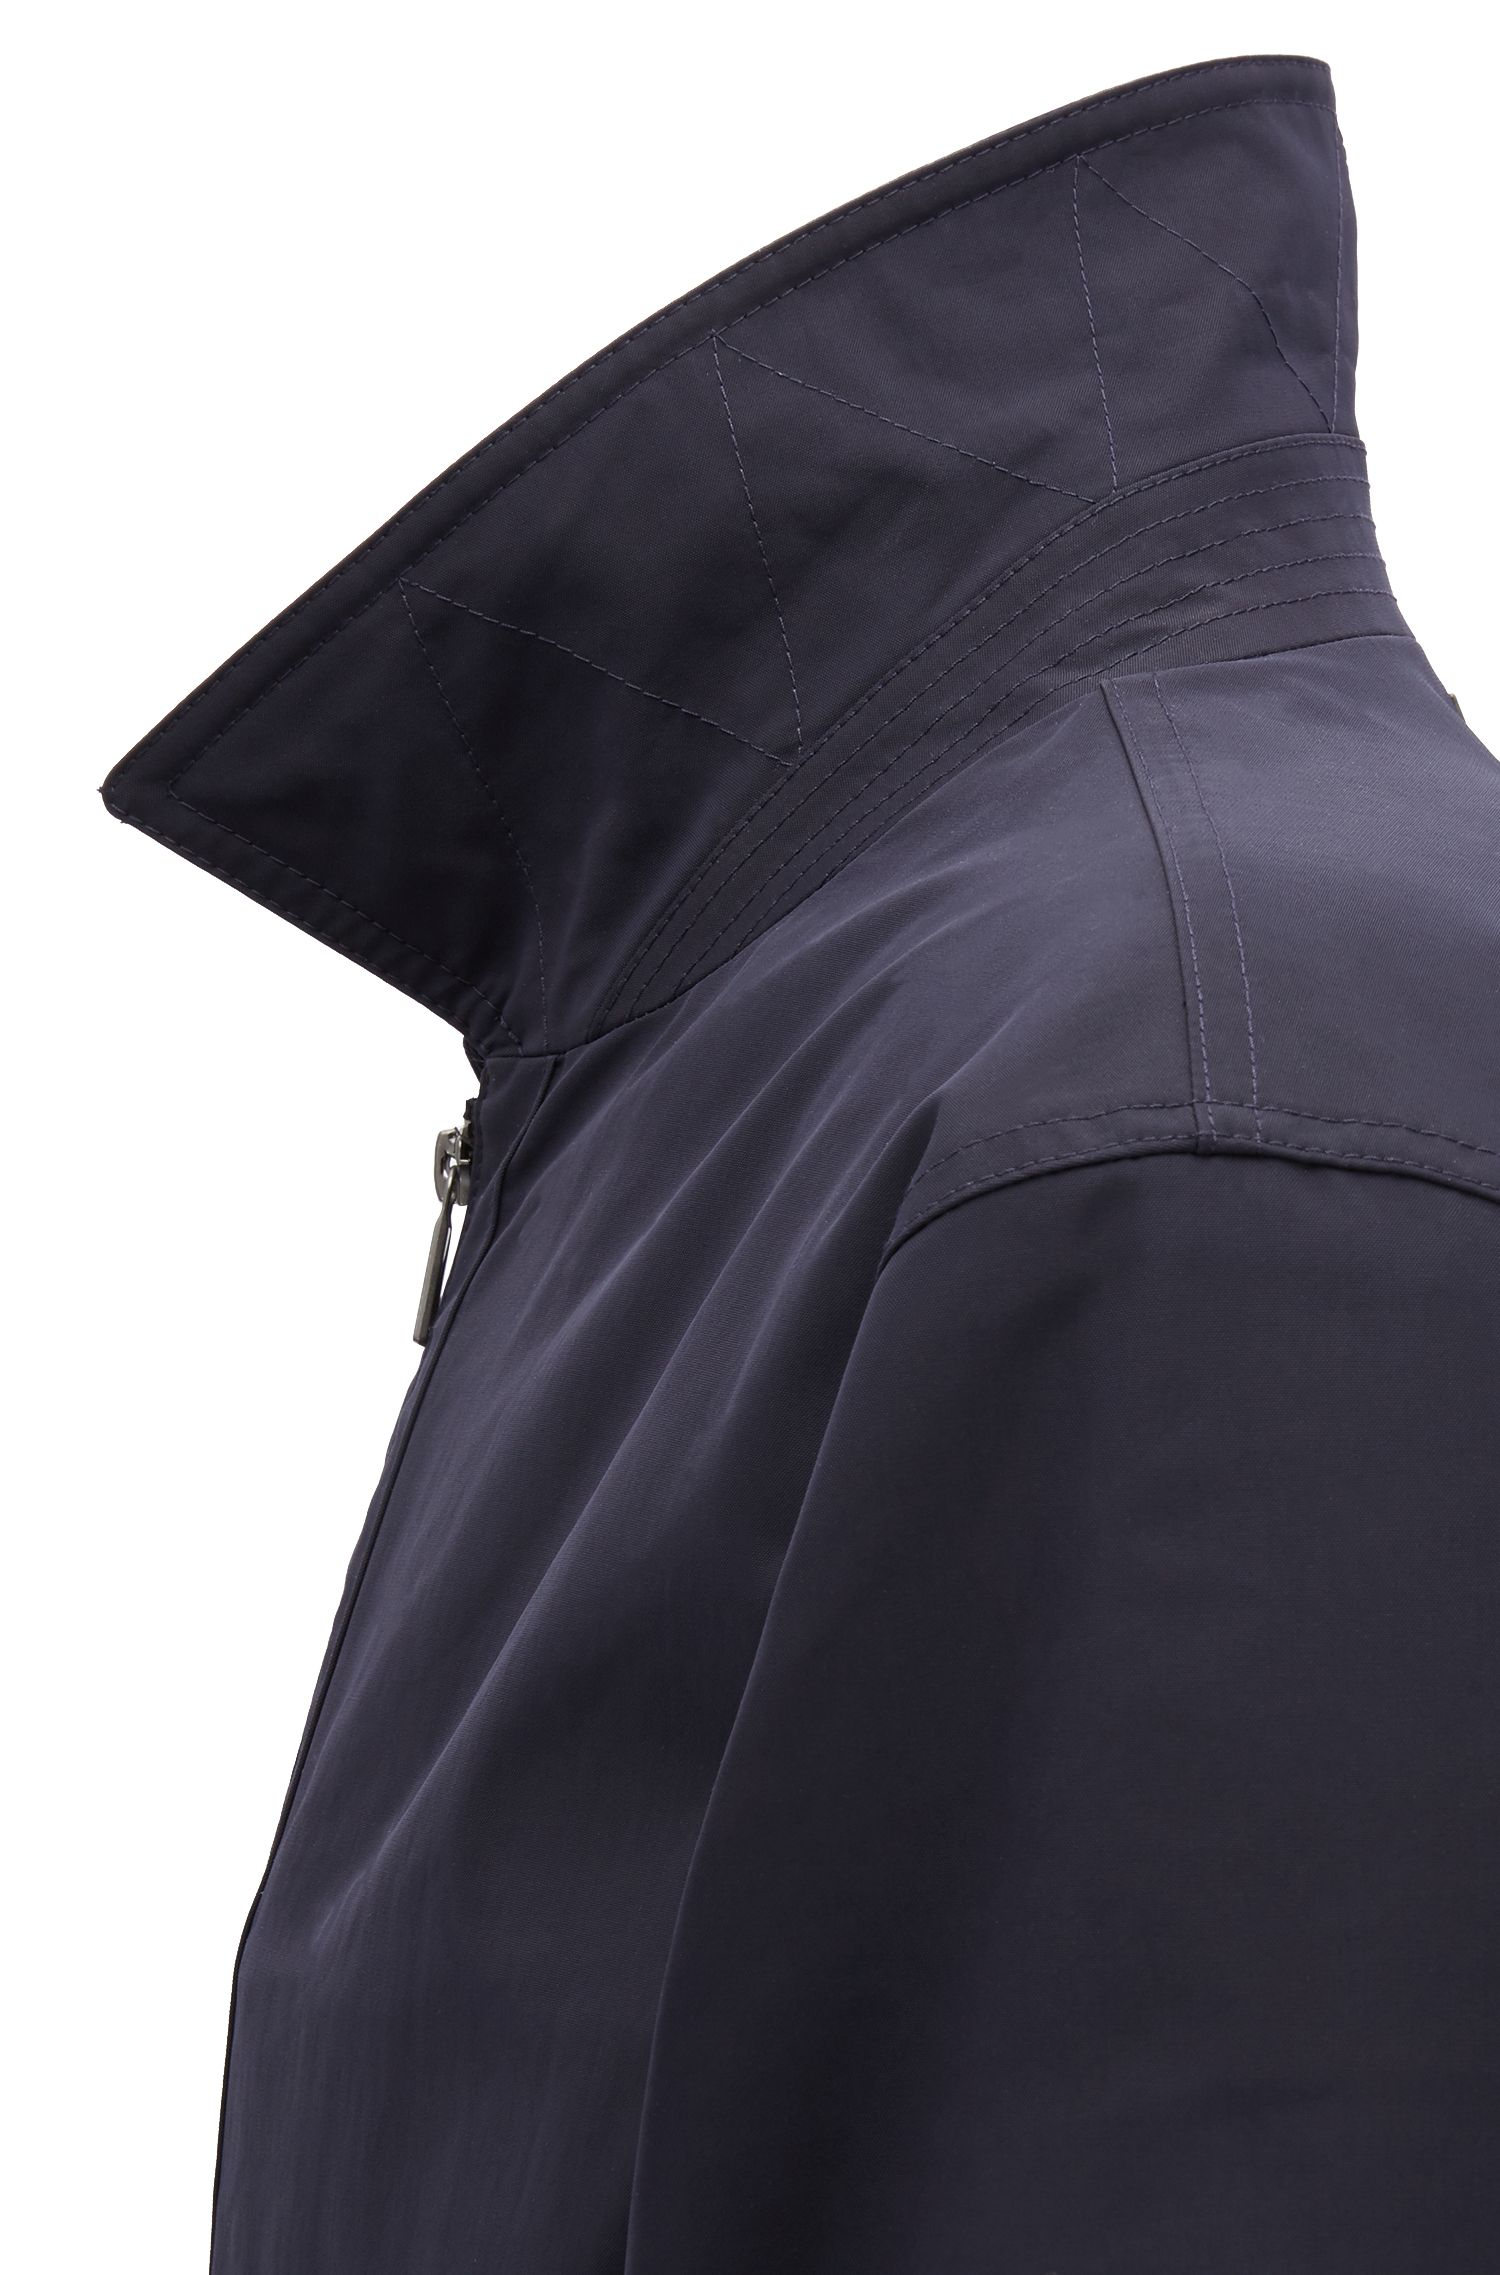 Blouson jacket in water-repellent fabric